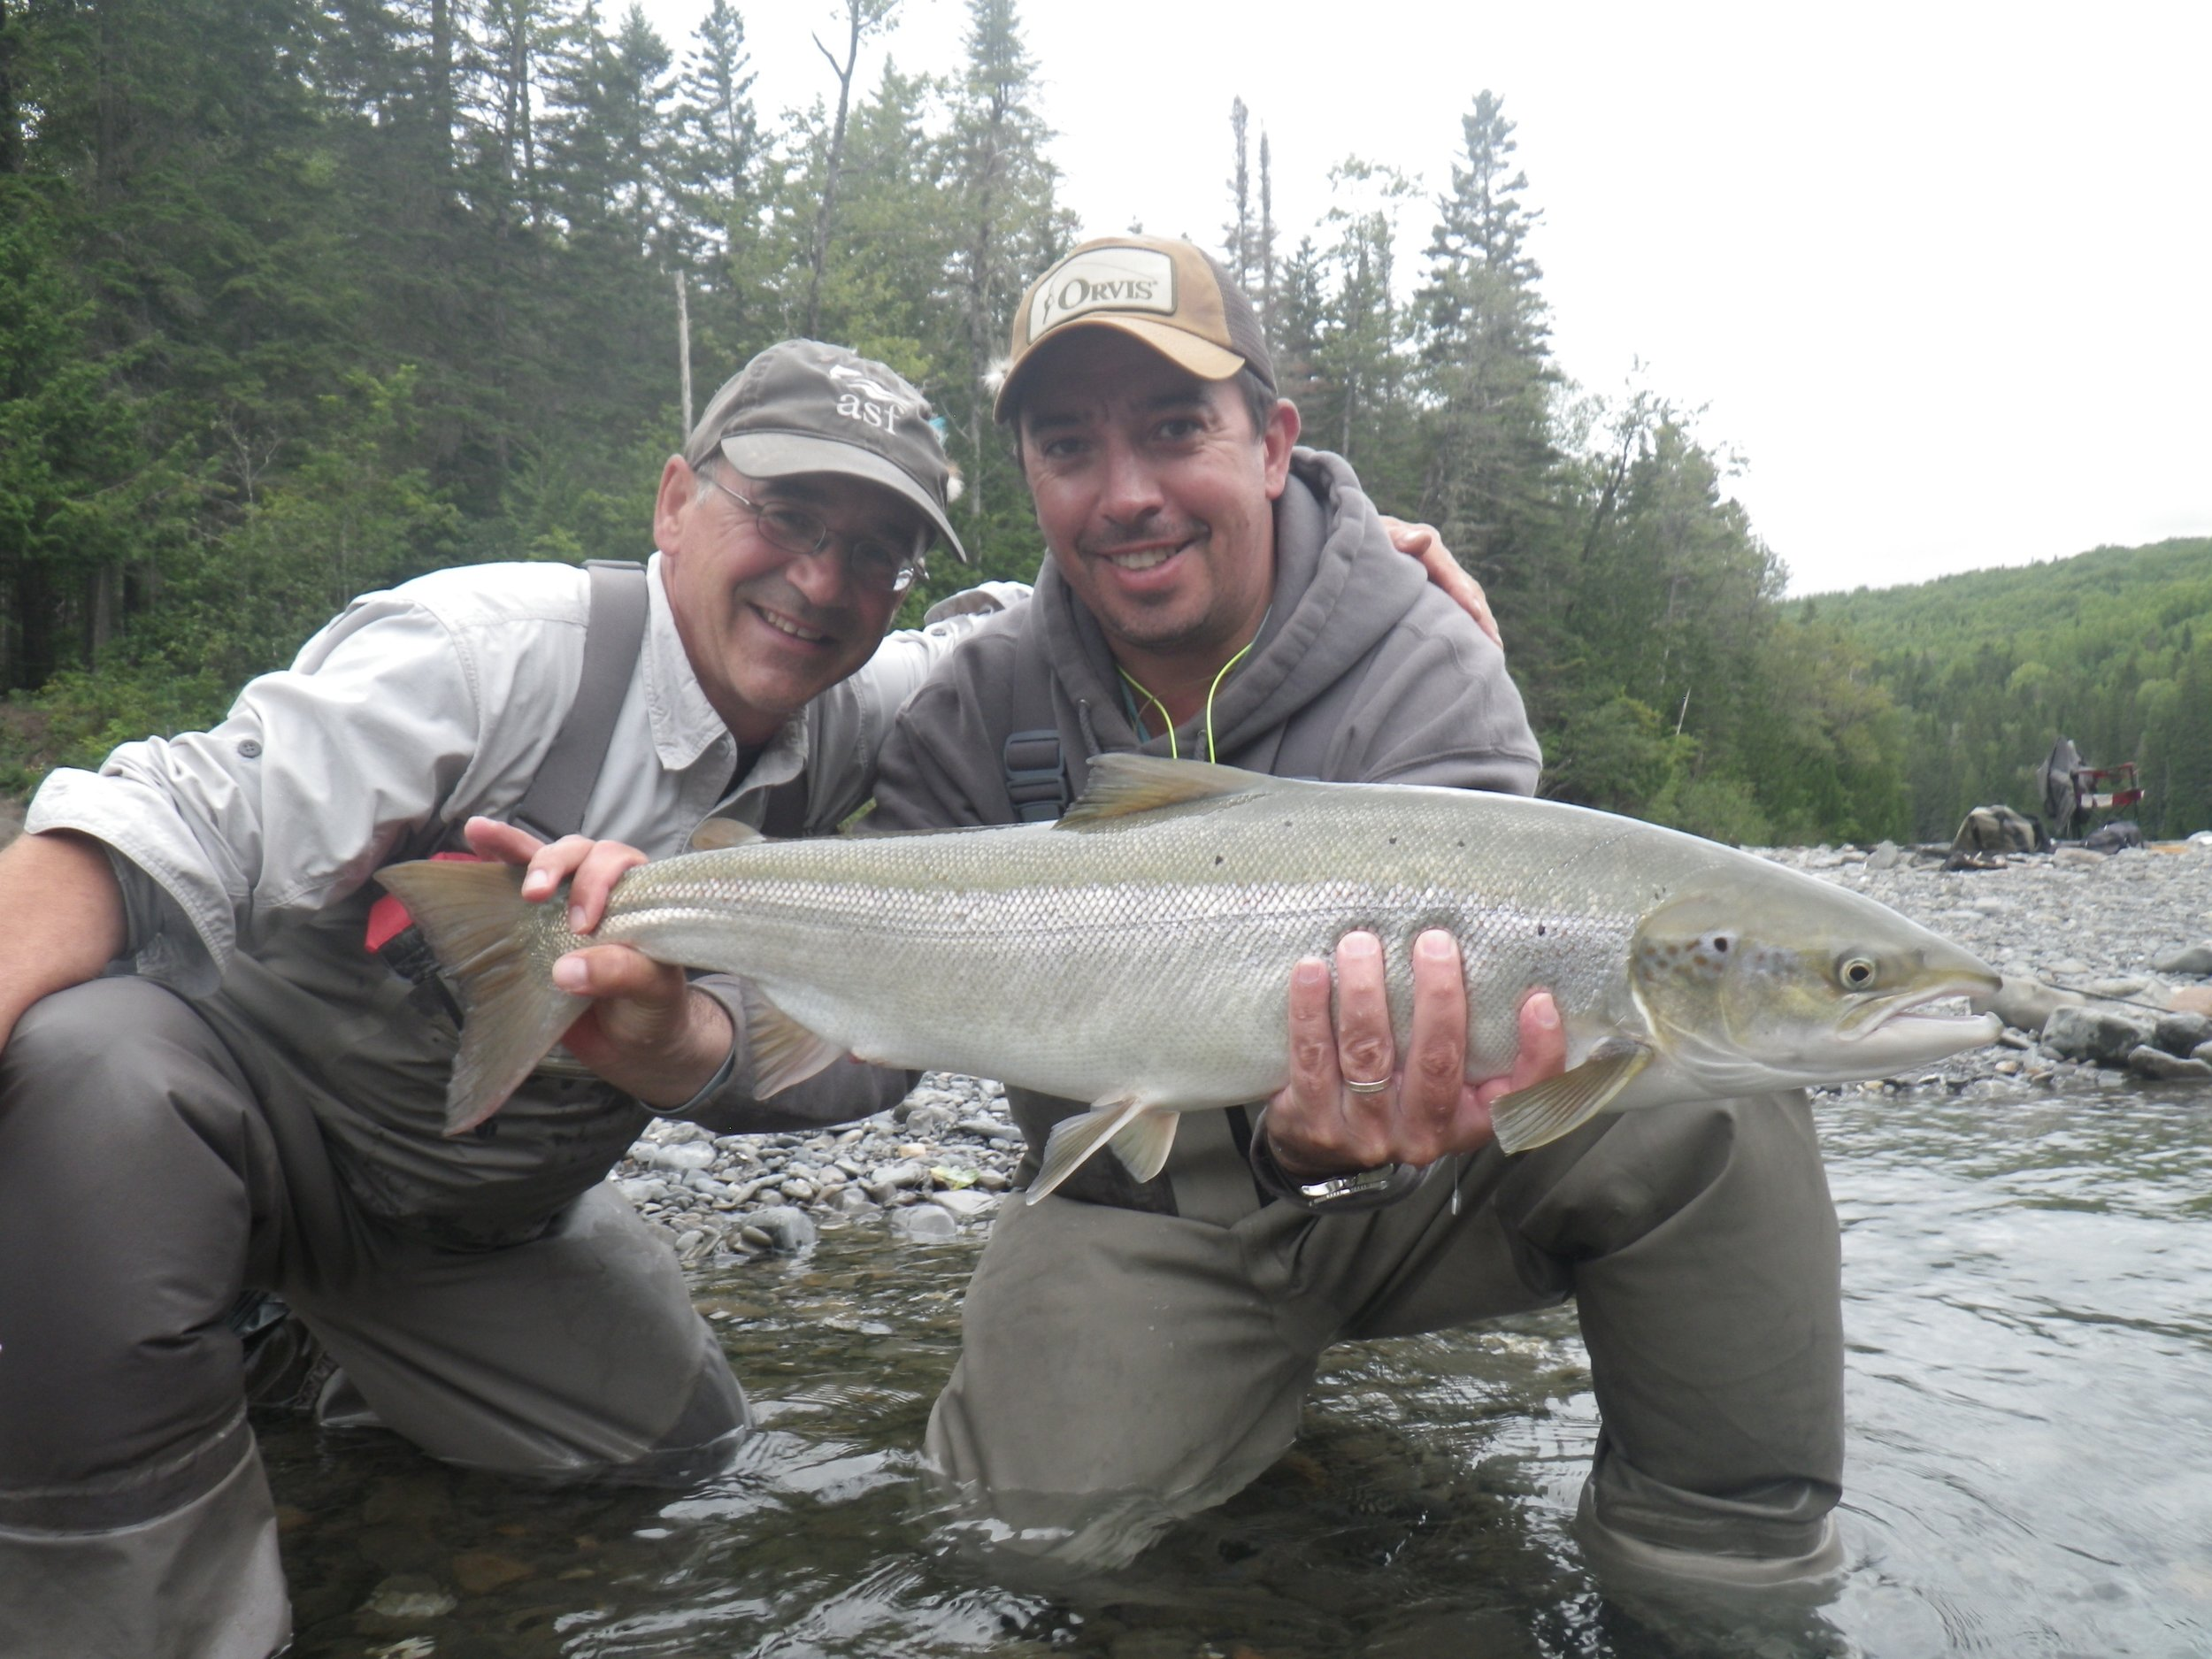 Pancho Panzer (right) and Camp Bonaventure guide Carol Barriault with a nice one from the Bonaventure, congratulations Pancho!